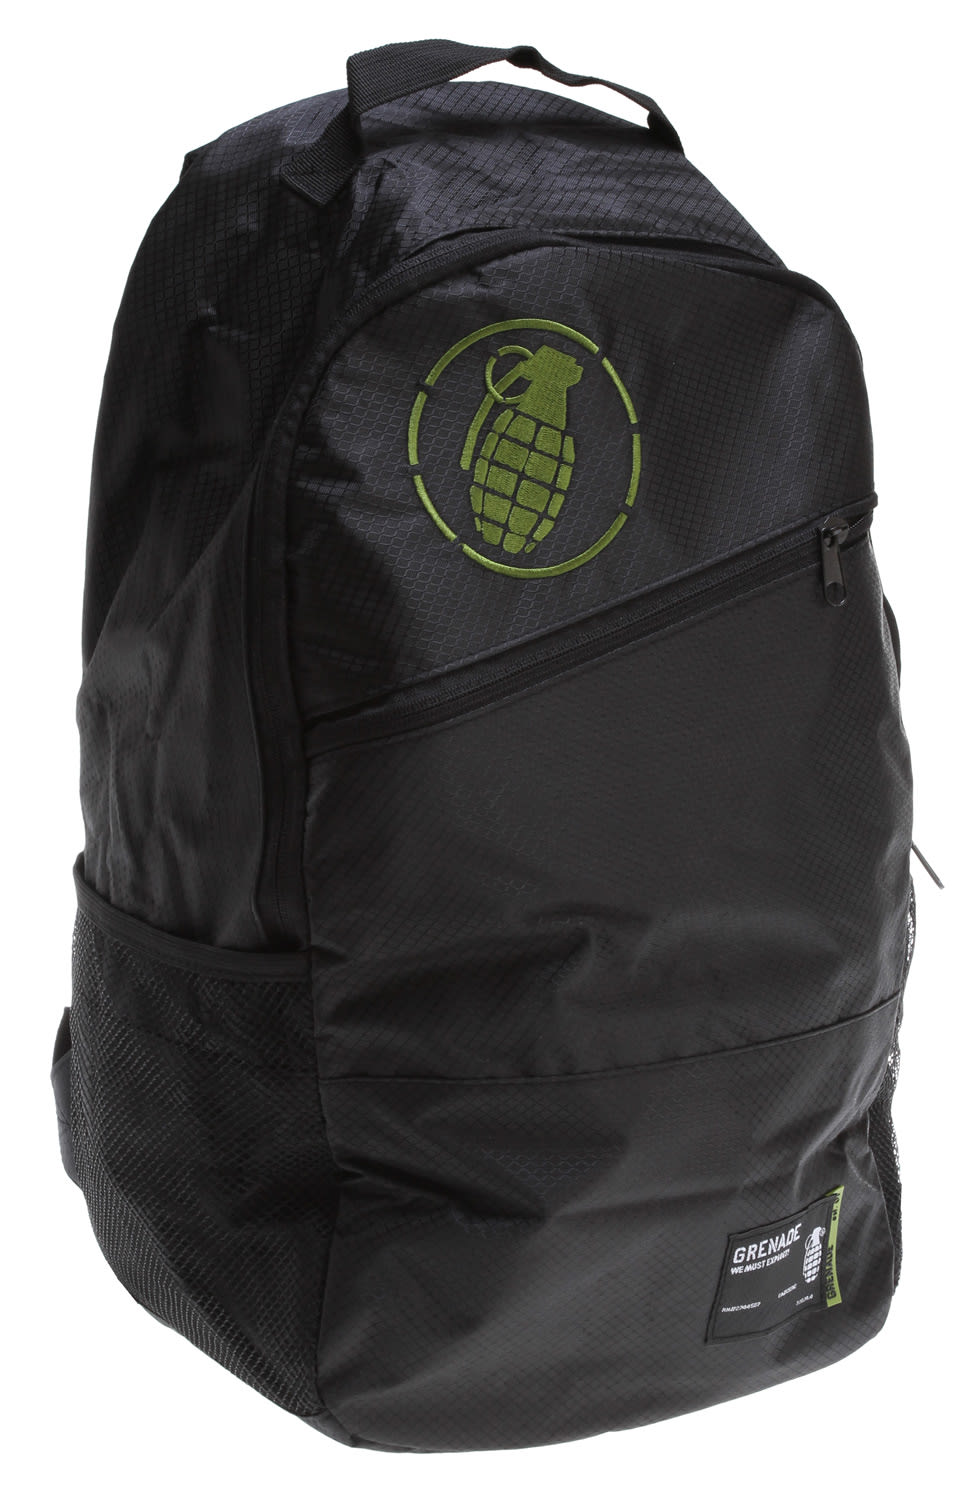 Grenade The Steele Backpack Black